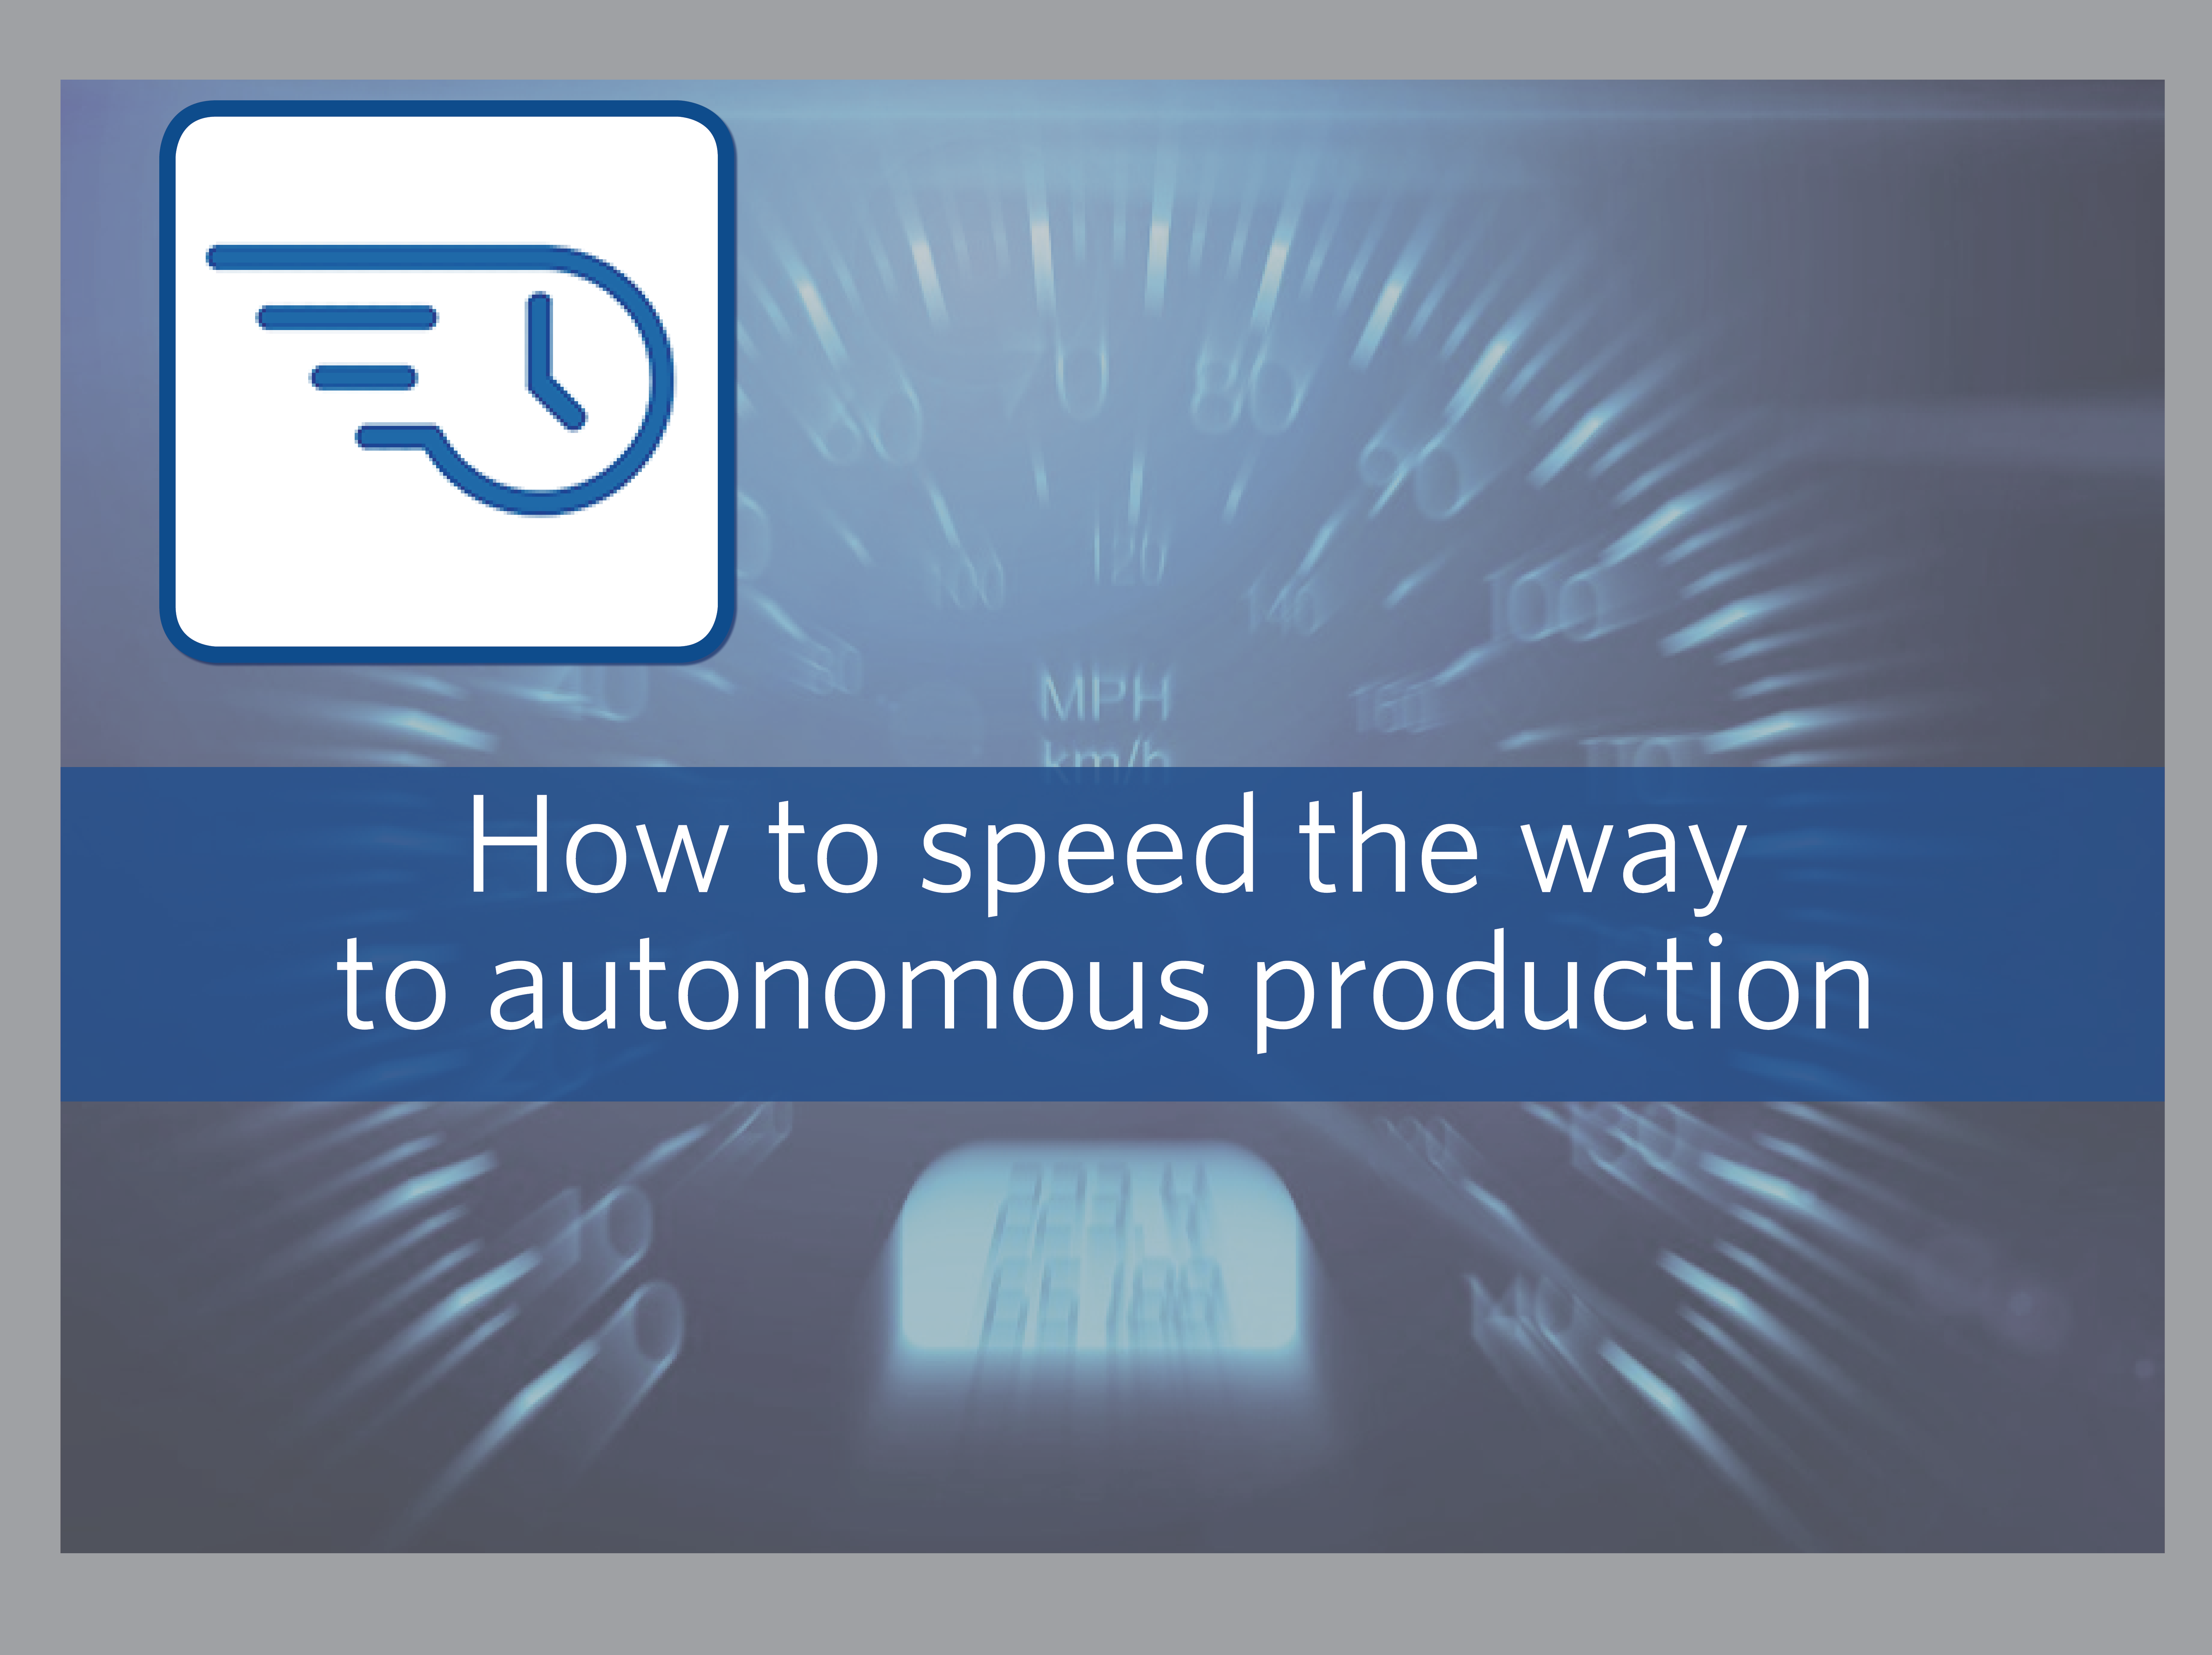 Autonomous Speed to oilfield production